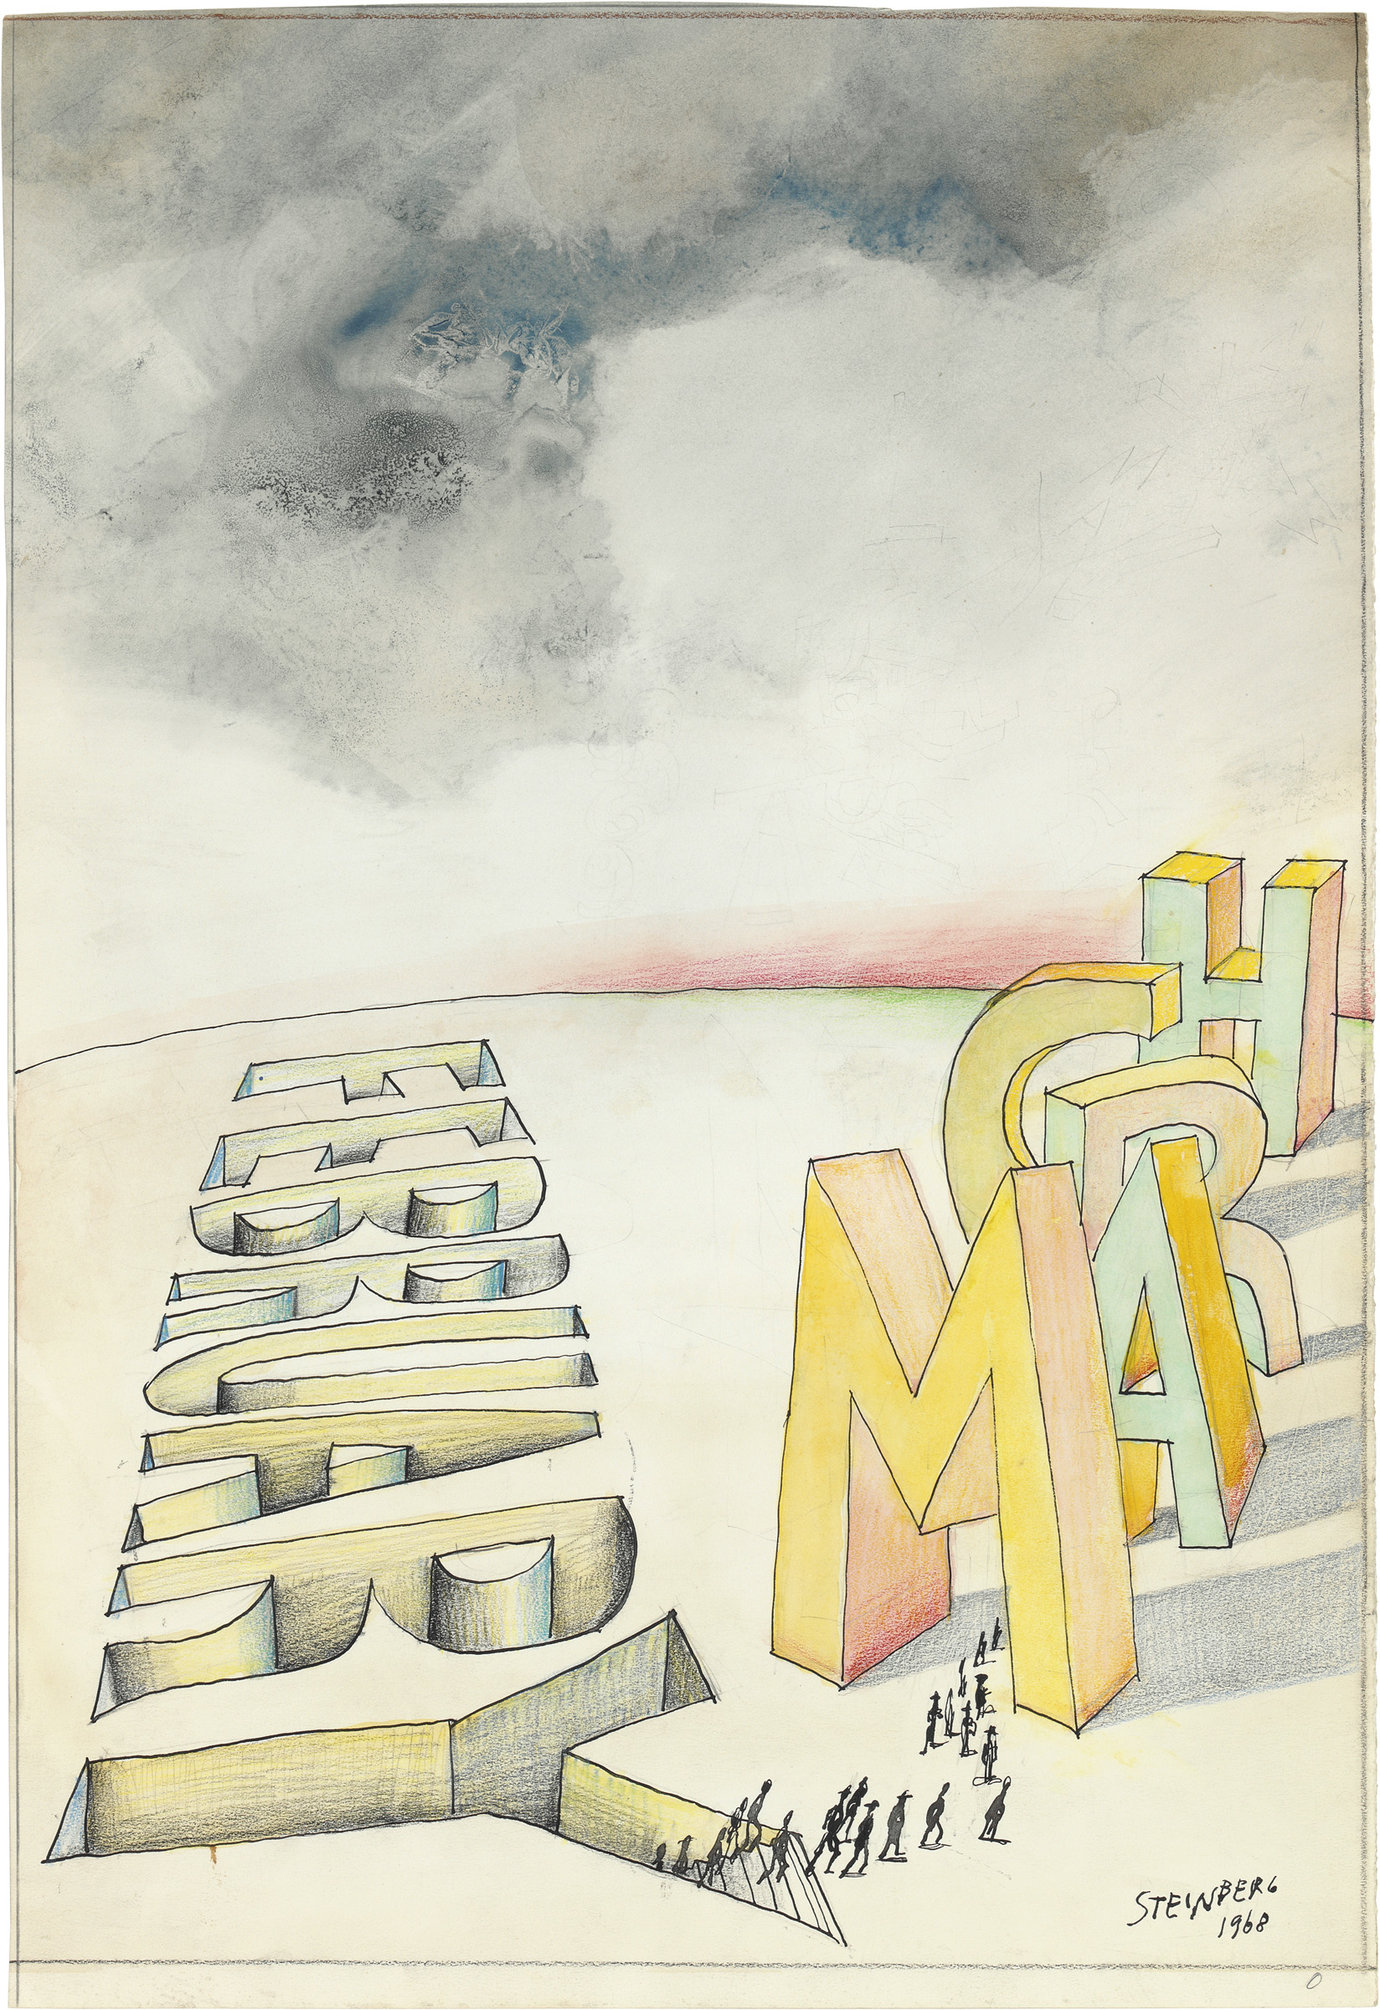 ", 1968. colored pencil, graphite, ink and watercolor on paper, 21-1/2"" x 14-3/4"" (54.6 cm x 37.5 cm)."